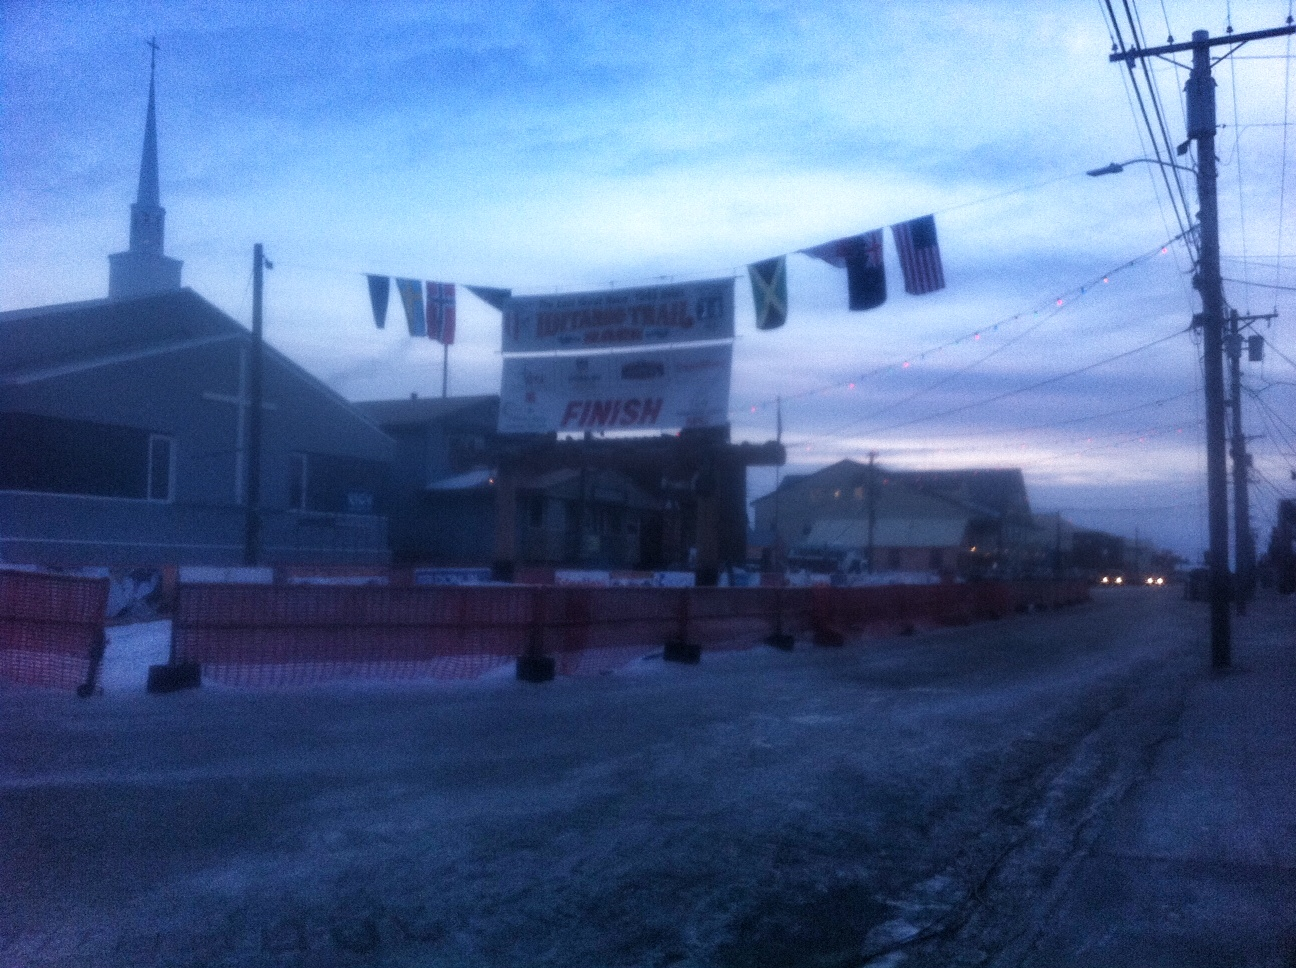 The Finish line and burled arch in Nome.